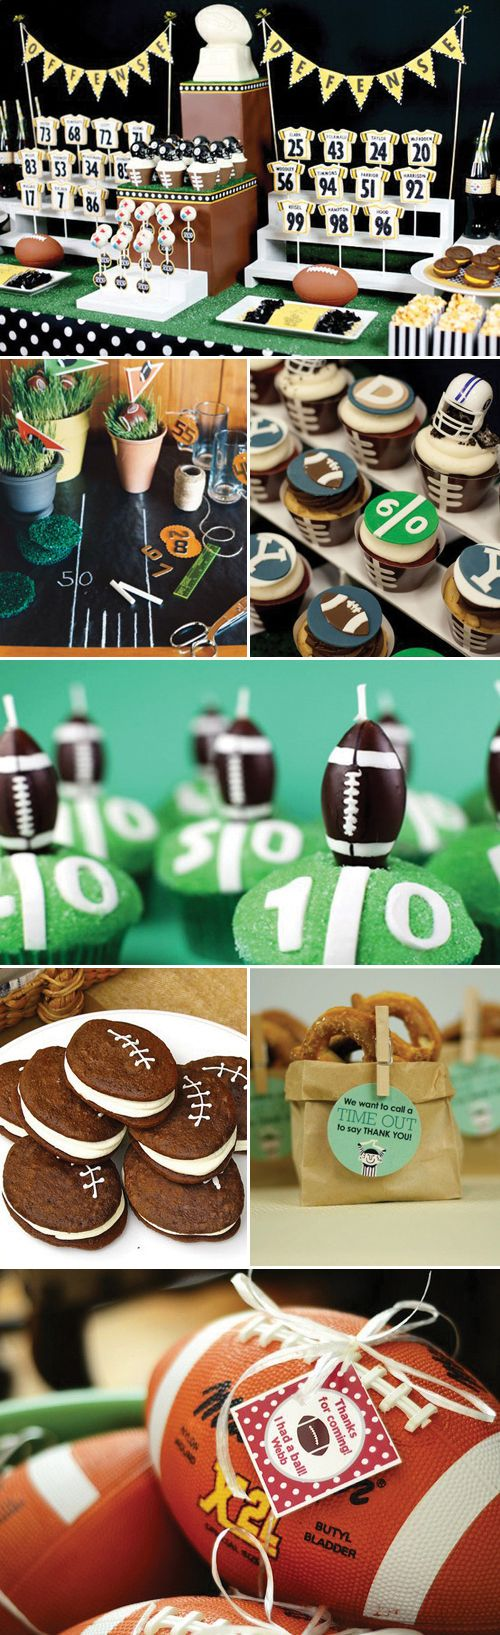 Football Birthday Party ~ love the  whoopie pies in football shapes and the idea of giving footballs as favors